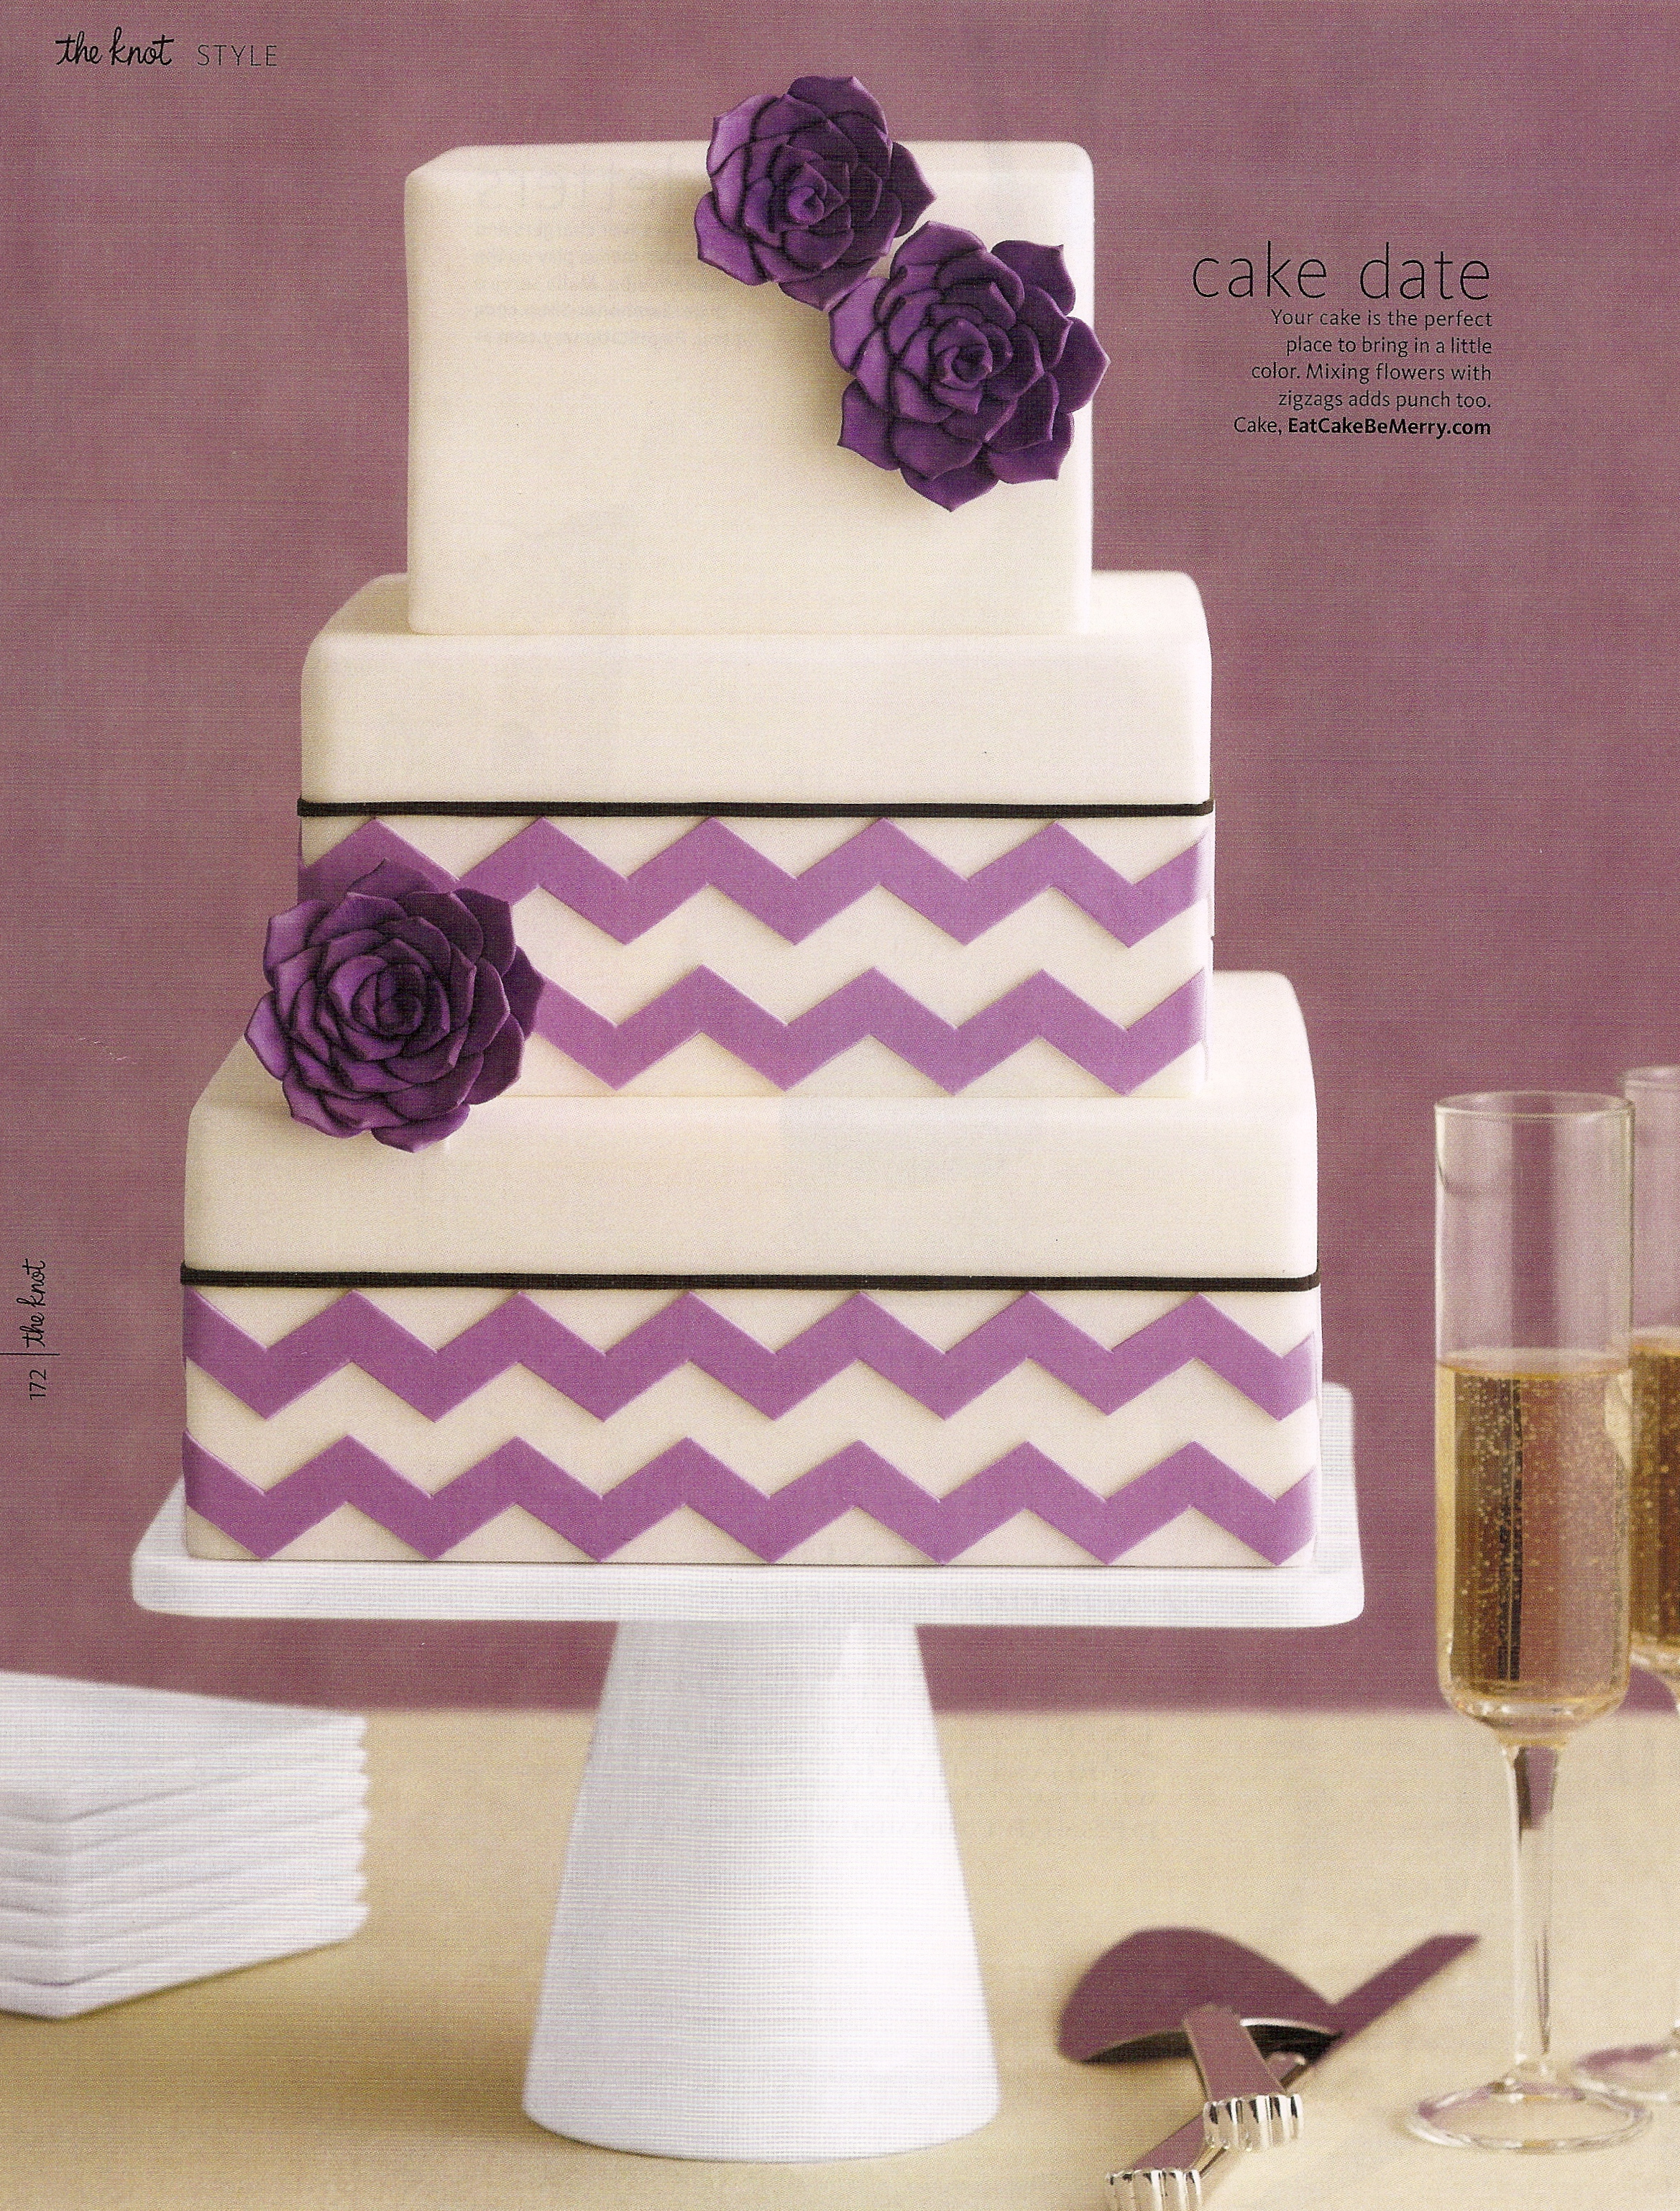 The Knot Summer 2012 Chevron.jpg